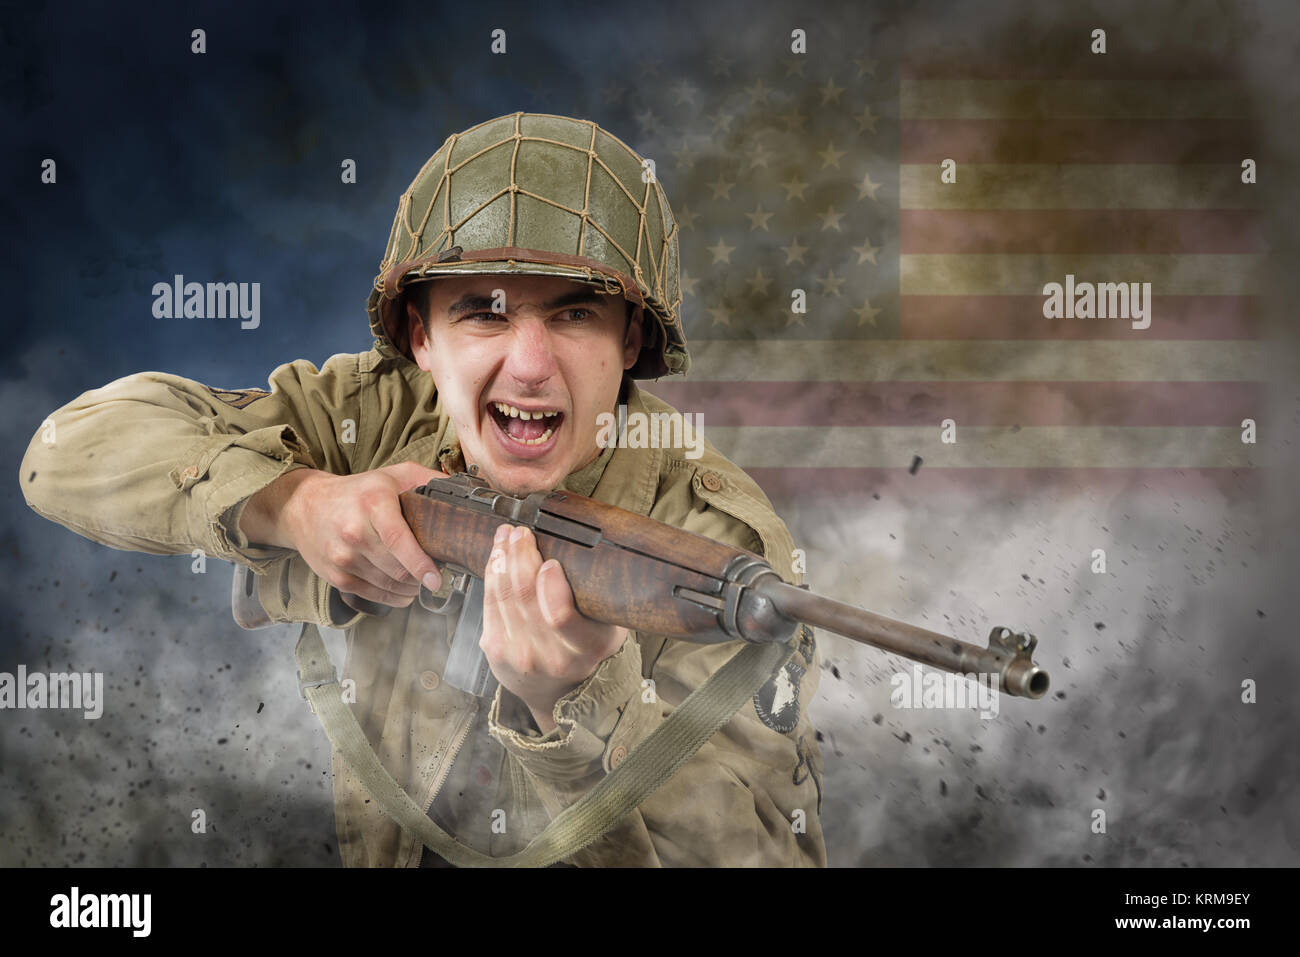 American soldier ww2 attack - Stock Image